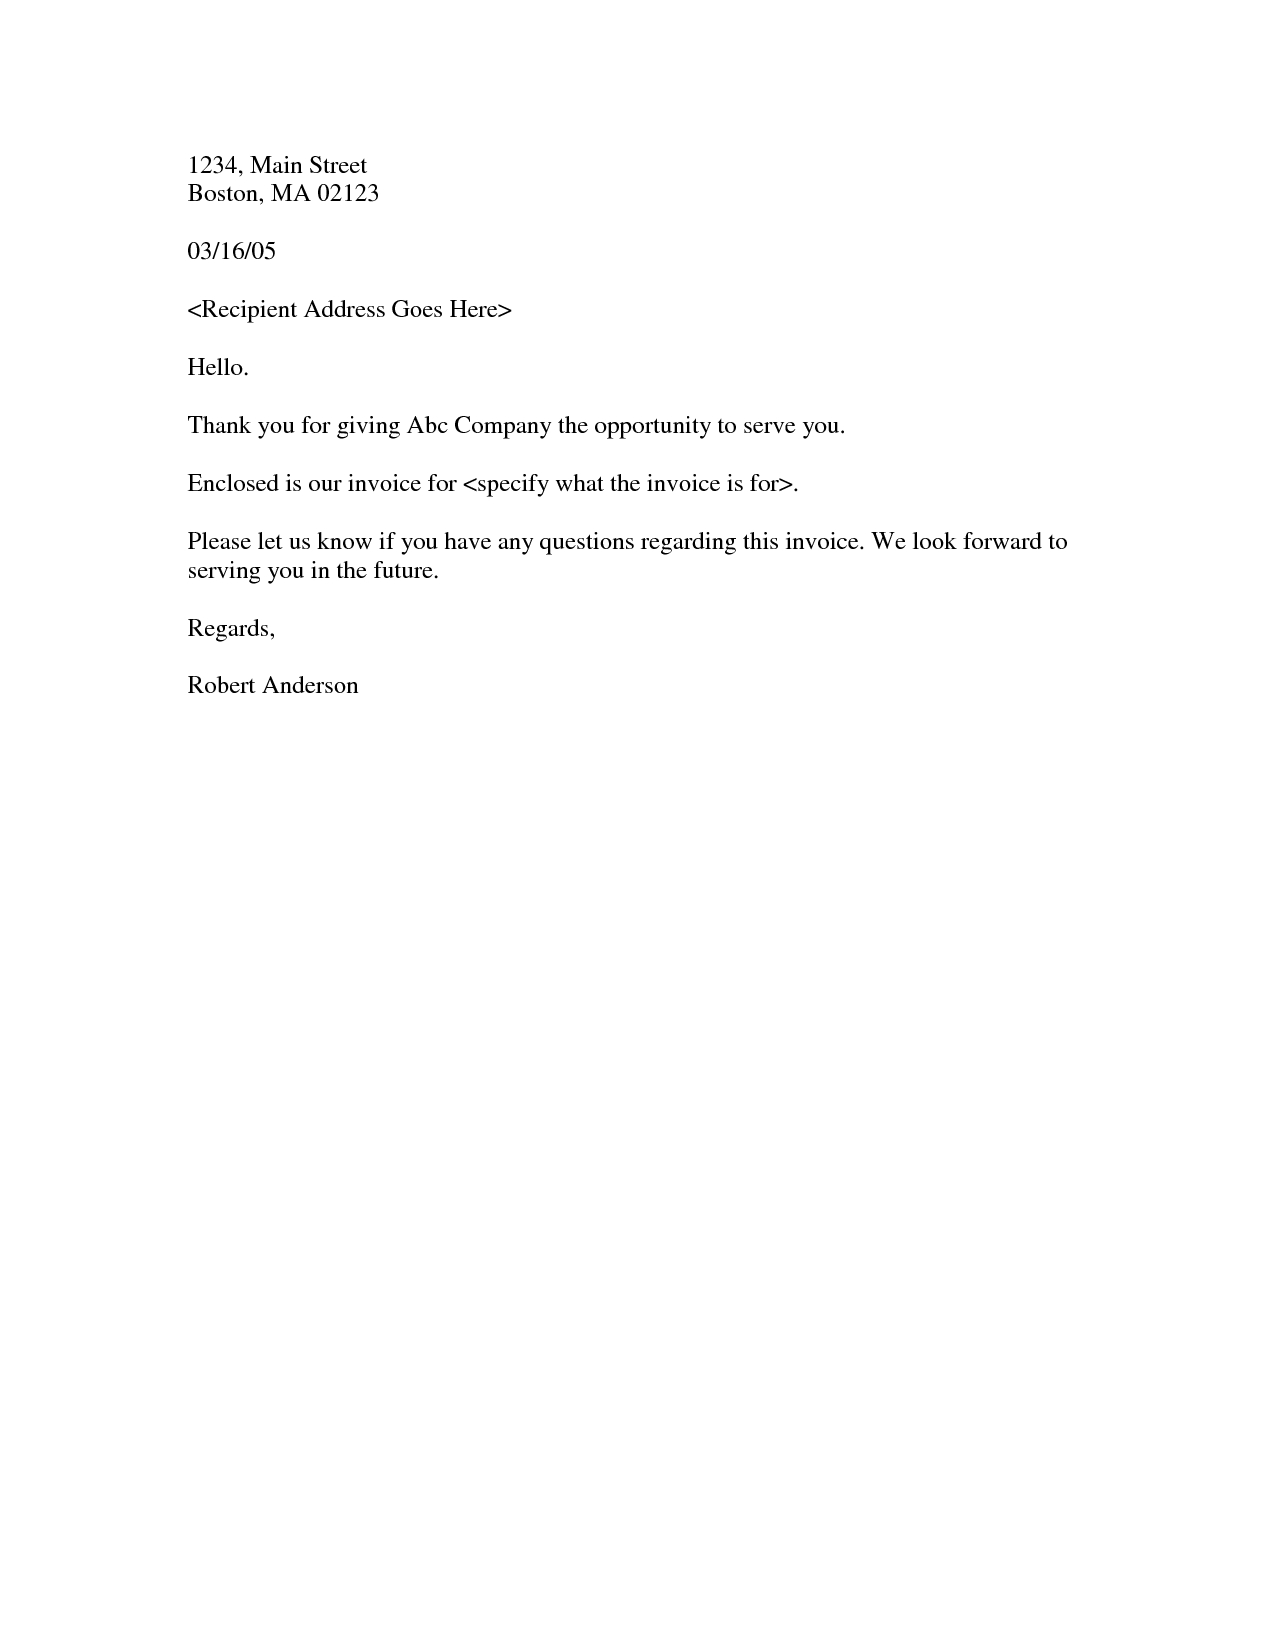 ... Sample Letter With Invoice Sample Business Letter Invoice Cover Letter  Invoice Smaple